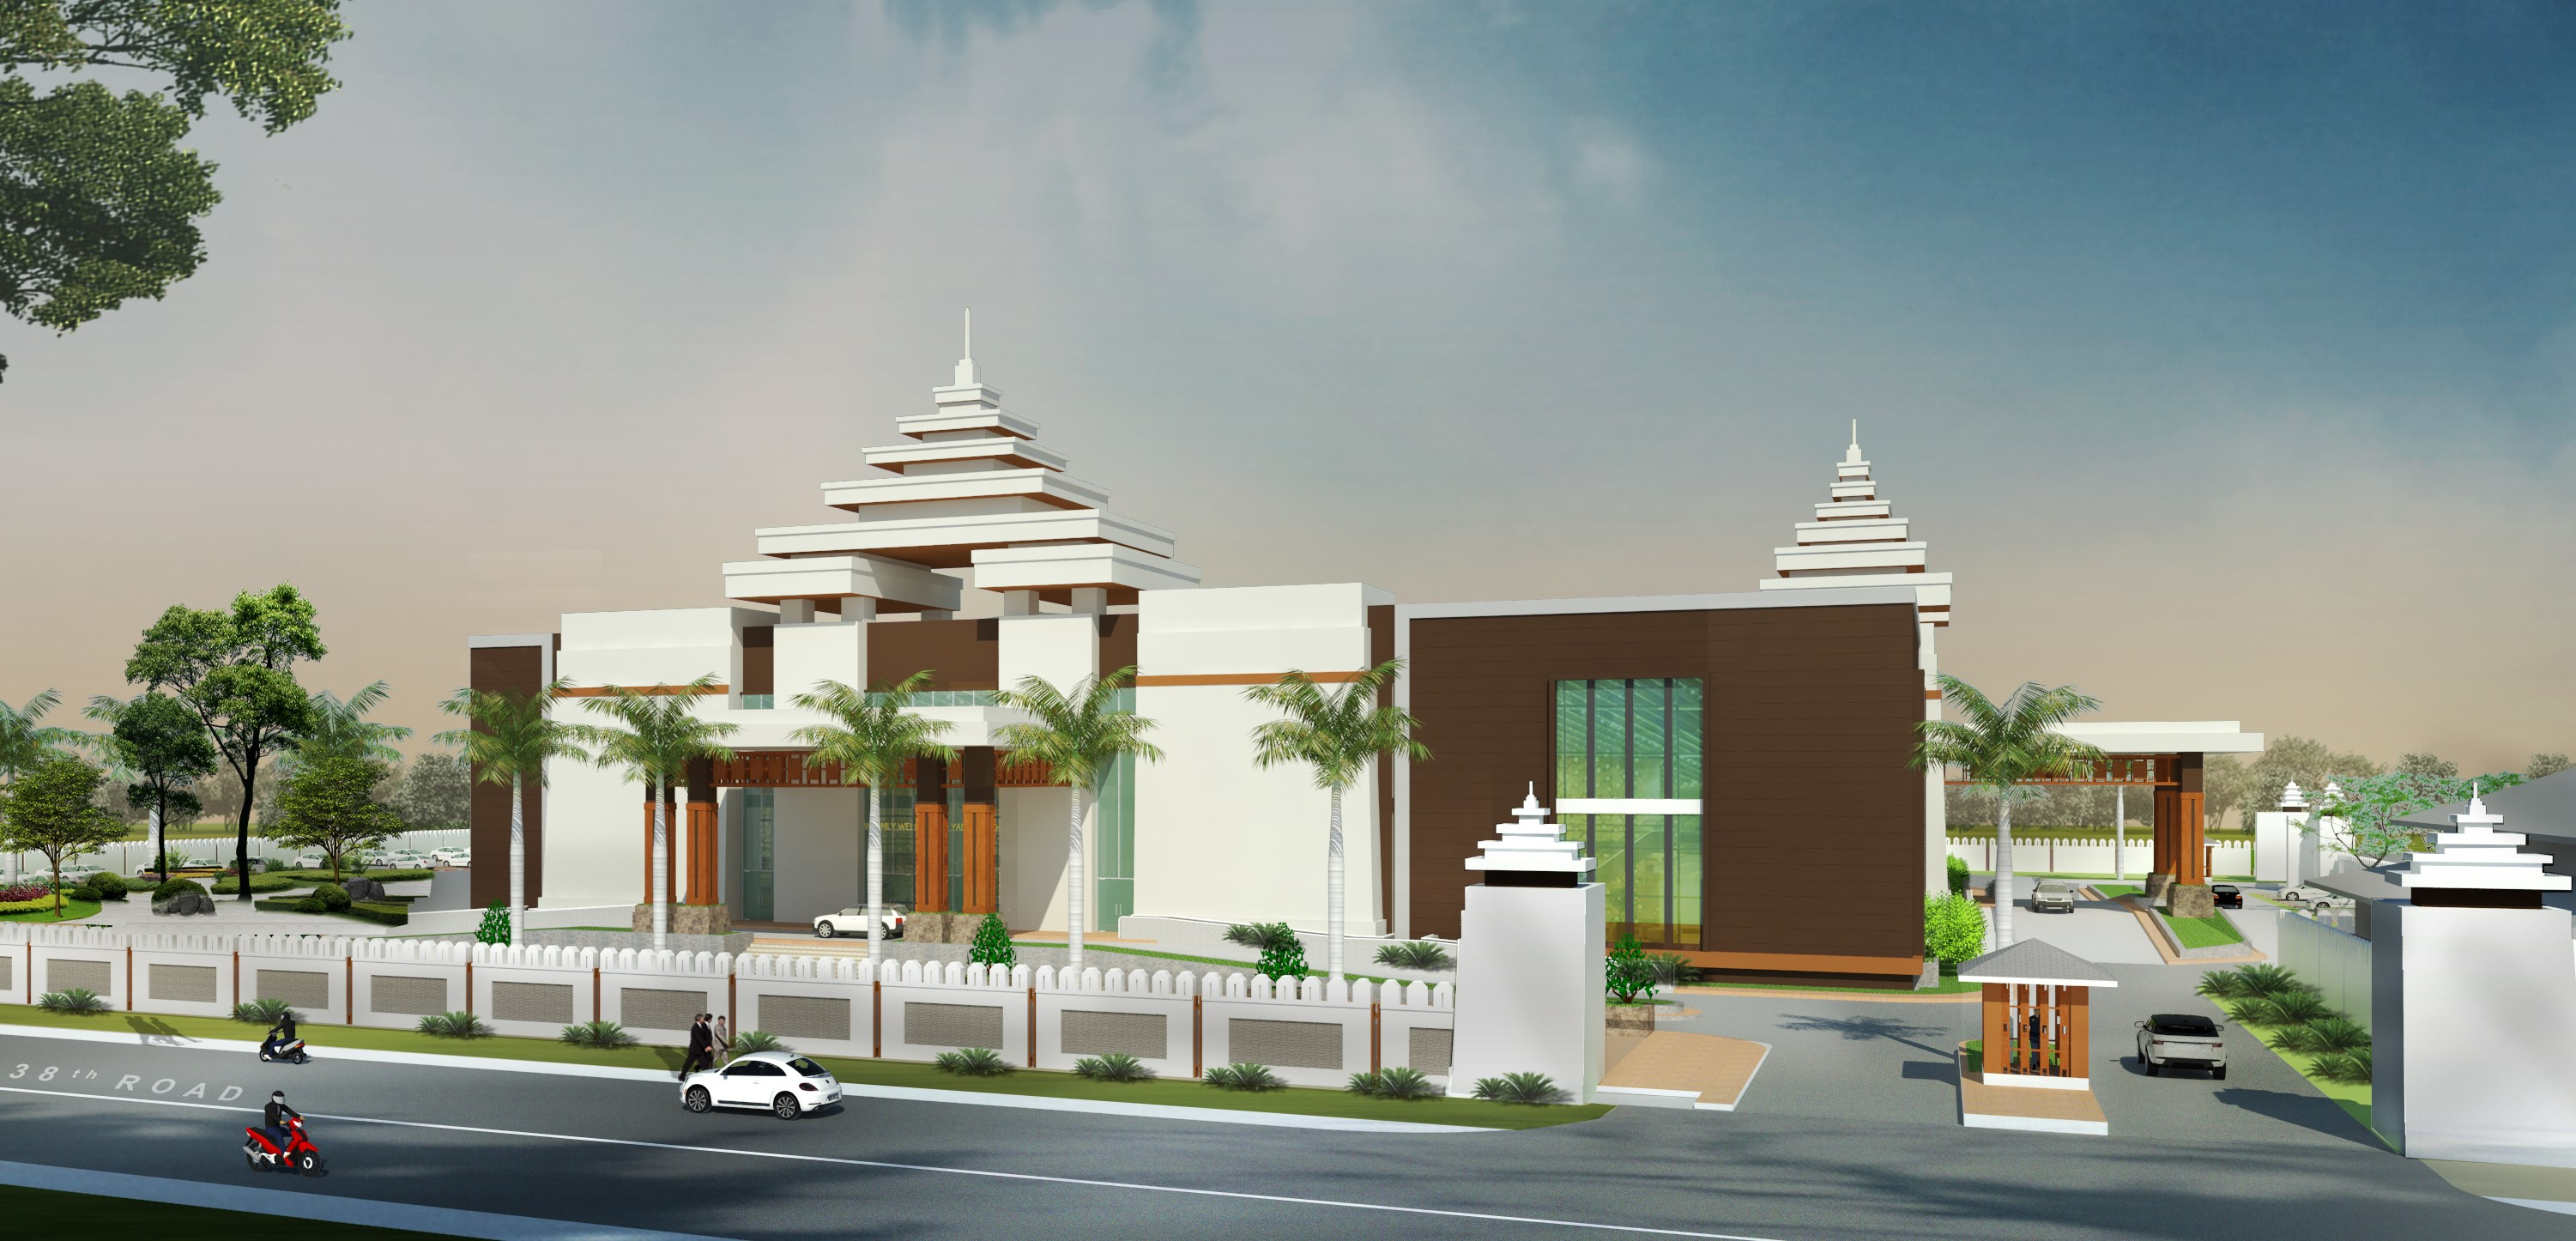 YANDANARPON MULTI FUNCTION HALL(MANDALAY)